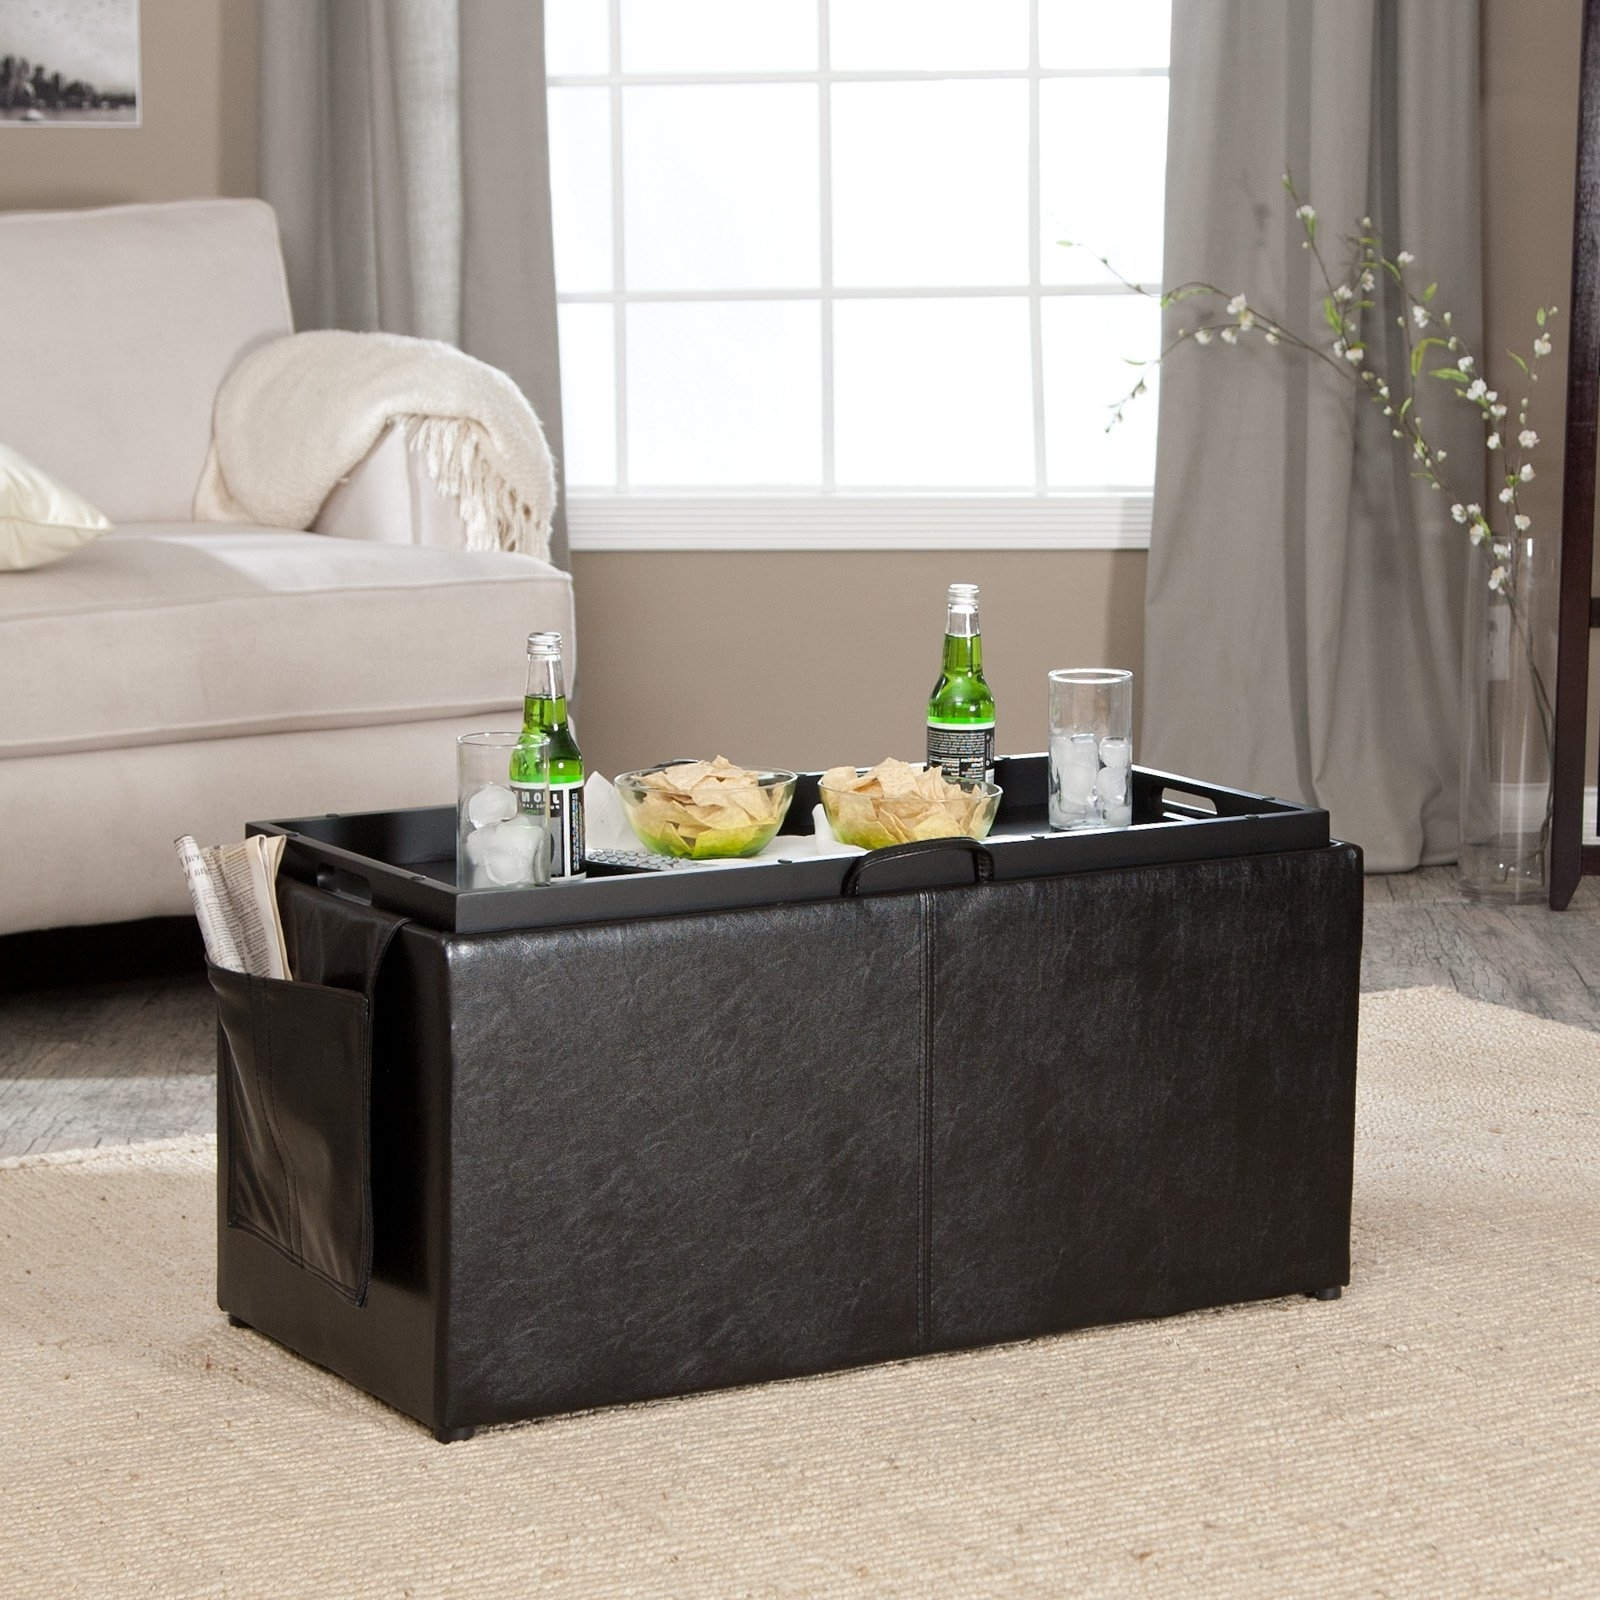 Trendy Ottomans With Tray With Furniture : Hartley Coffee Table Storage Ottoman With Tray Side (View 7 of 20)